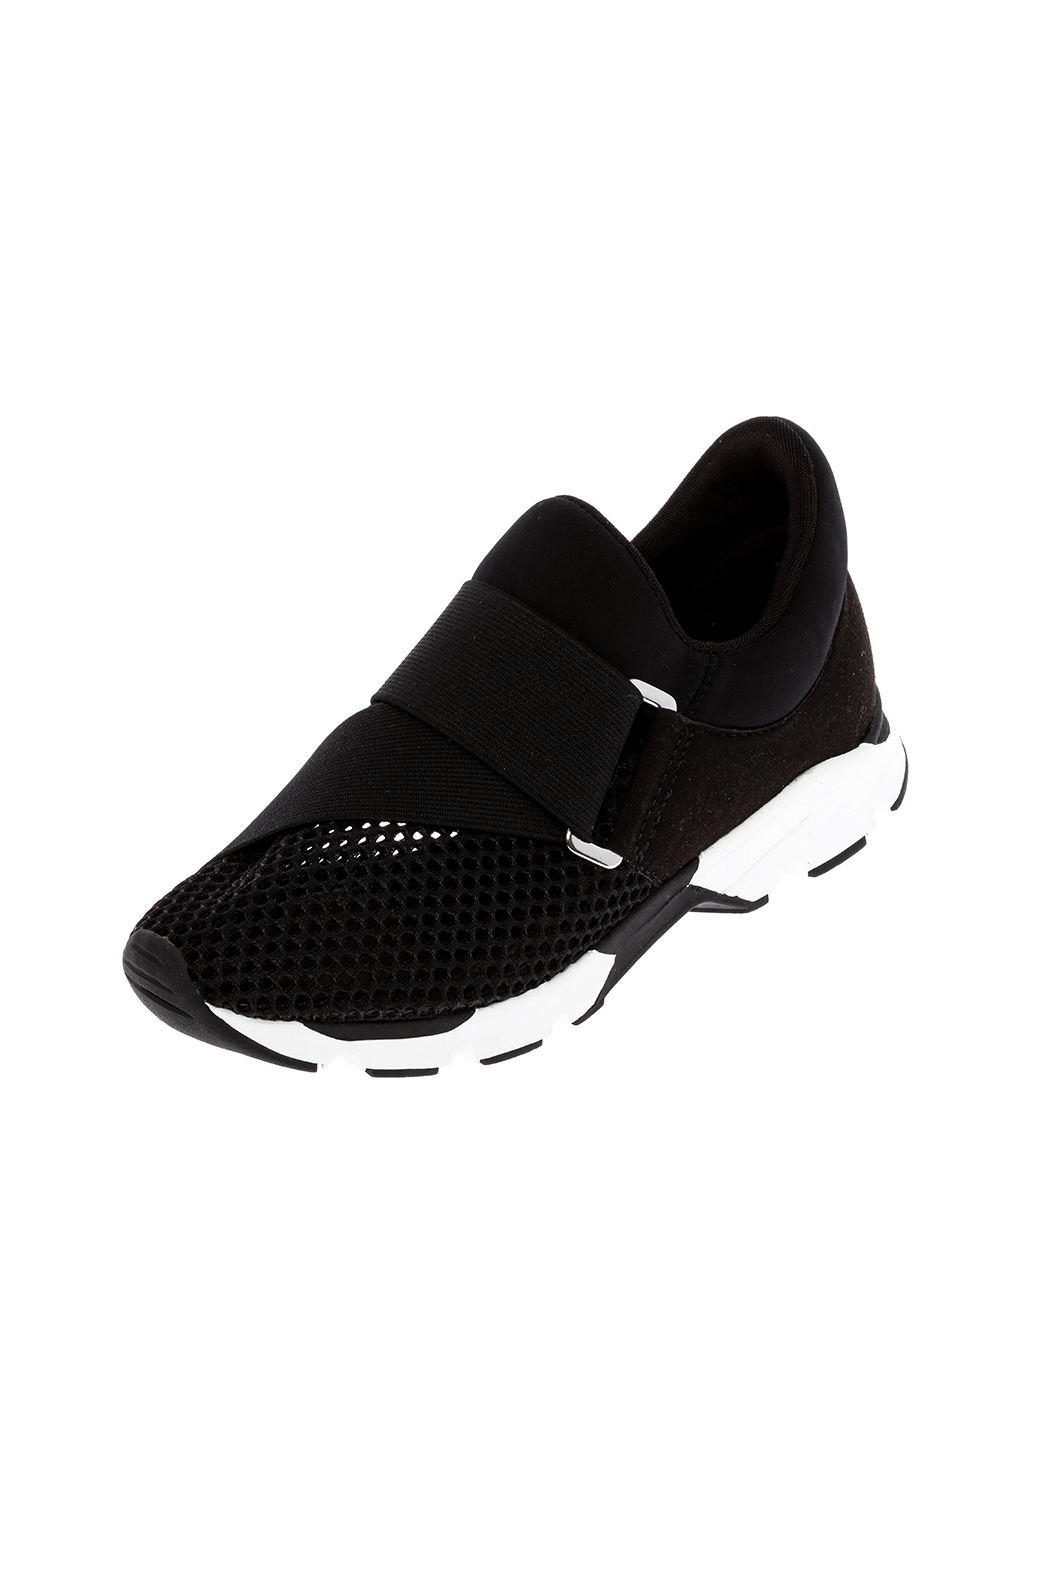 All Black Graphic Tie Sneaker - Back Cropped Image